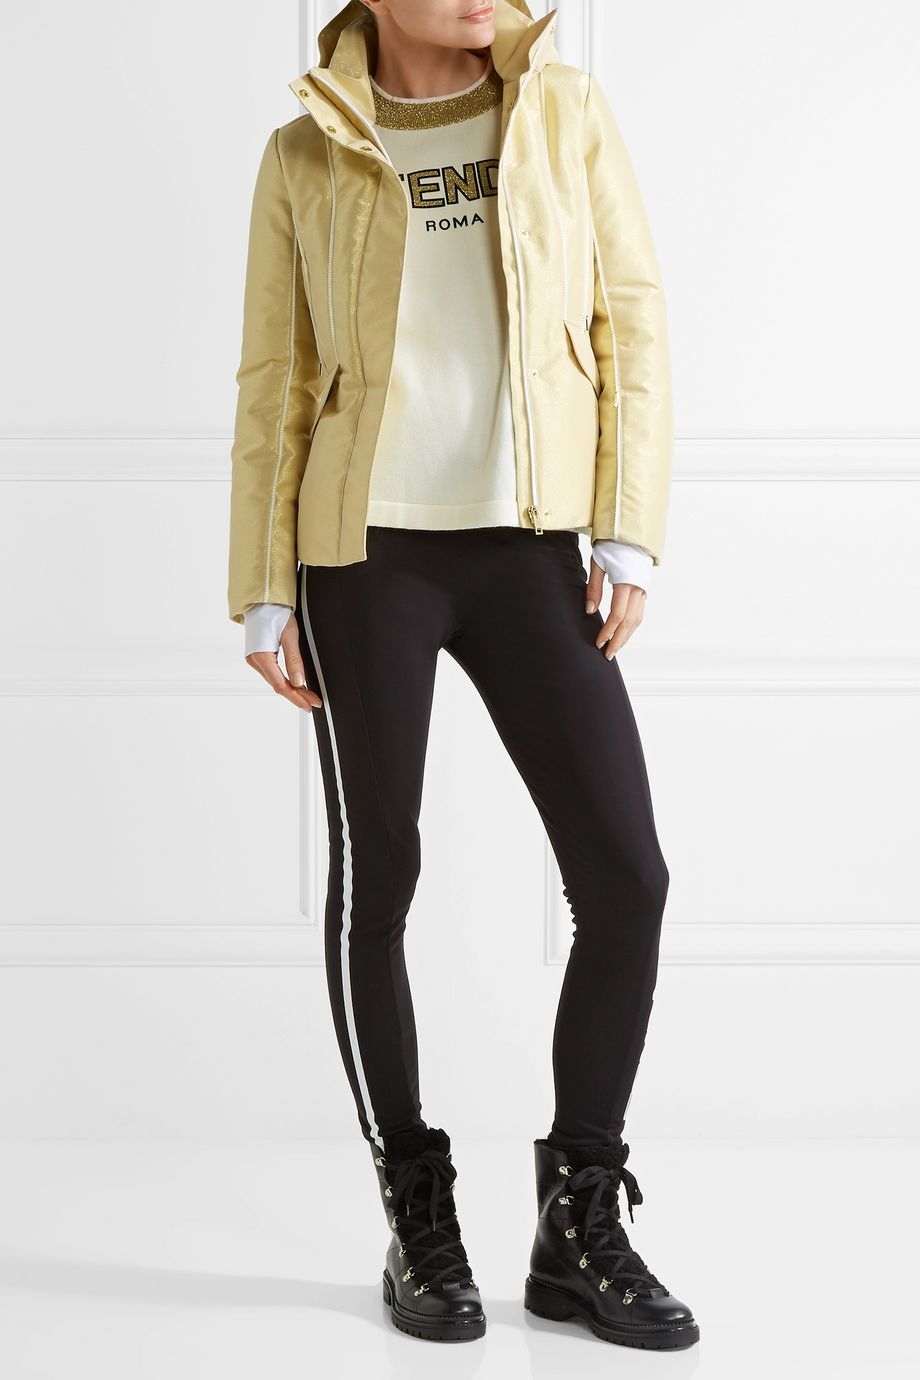 Fendi Roma metallic padded ski jacket